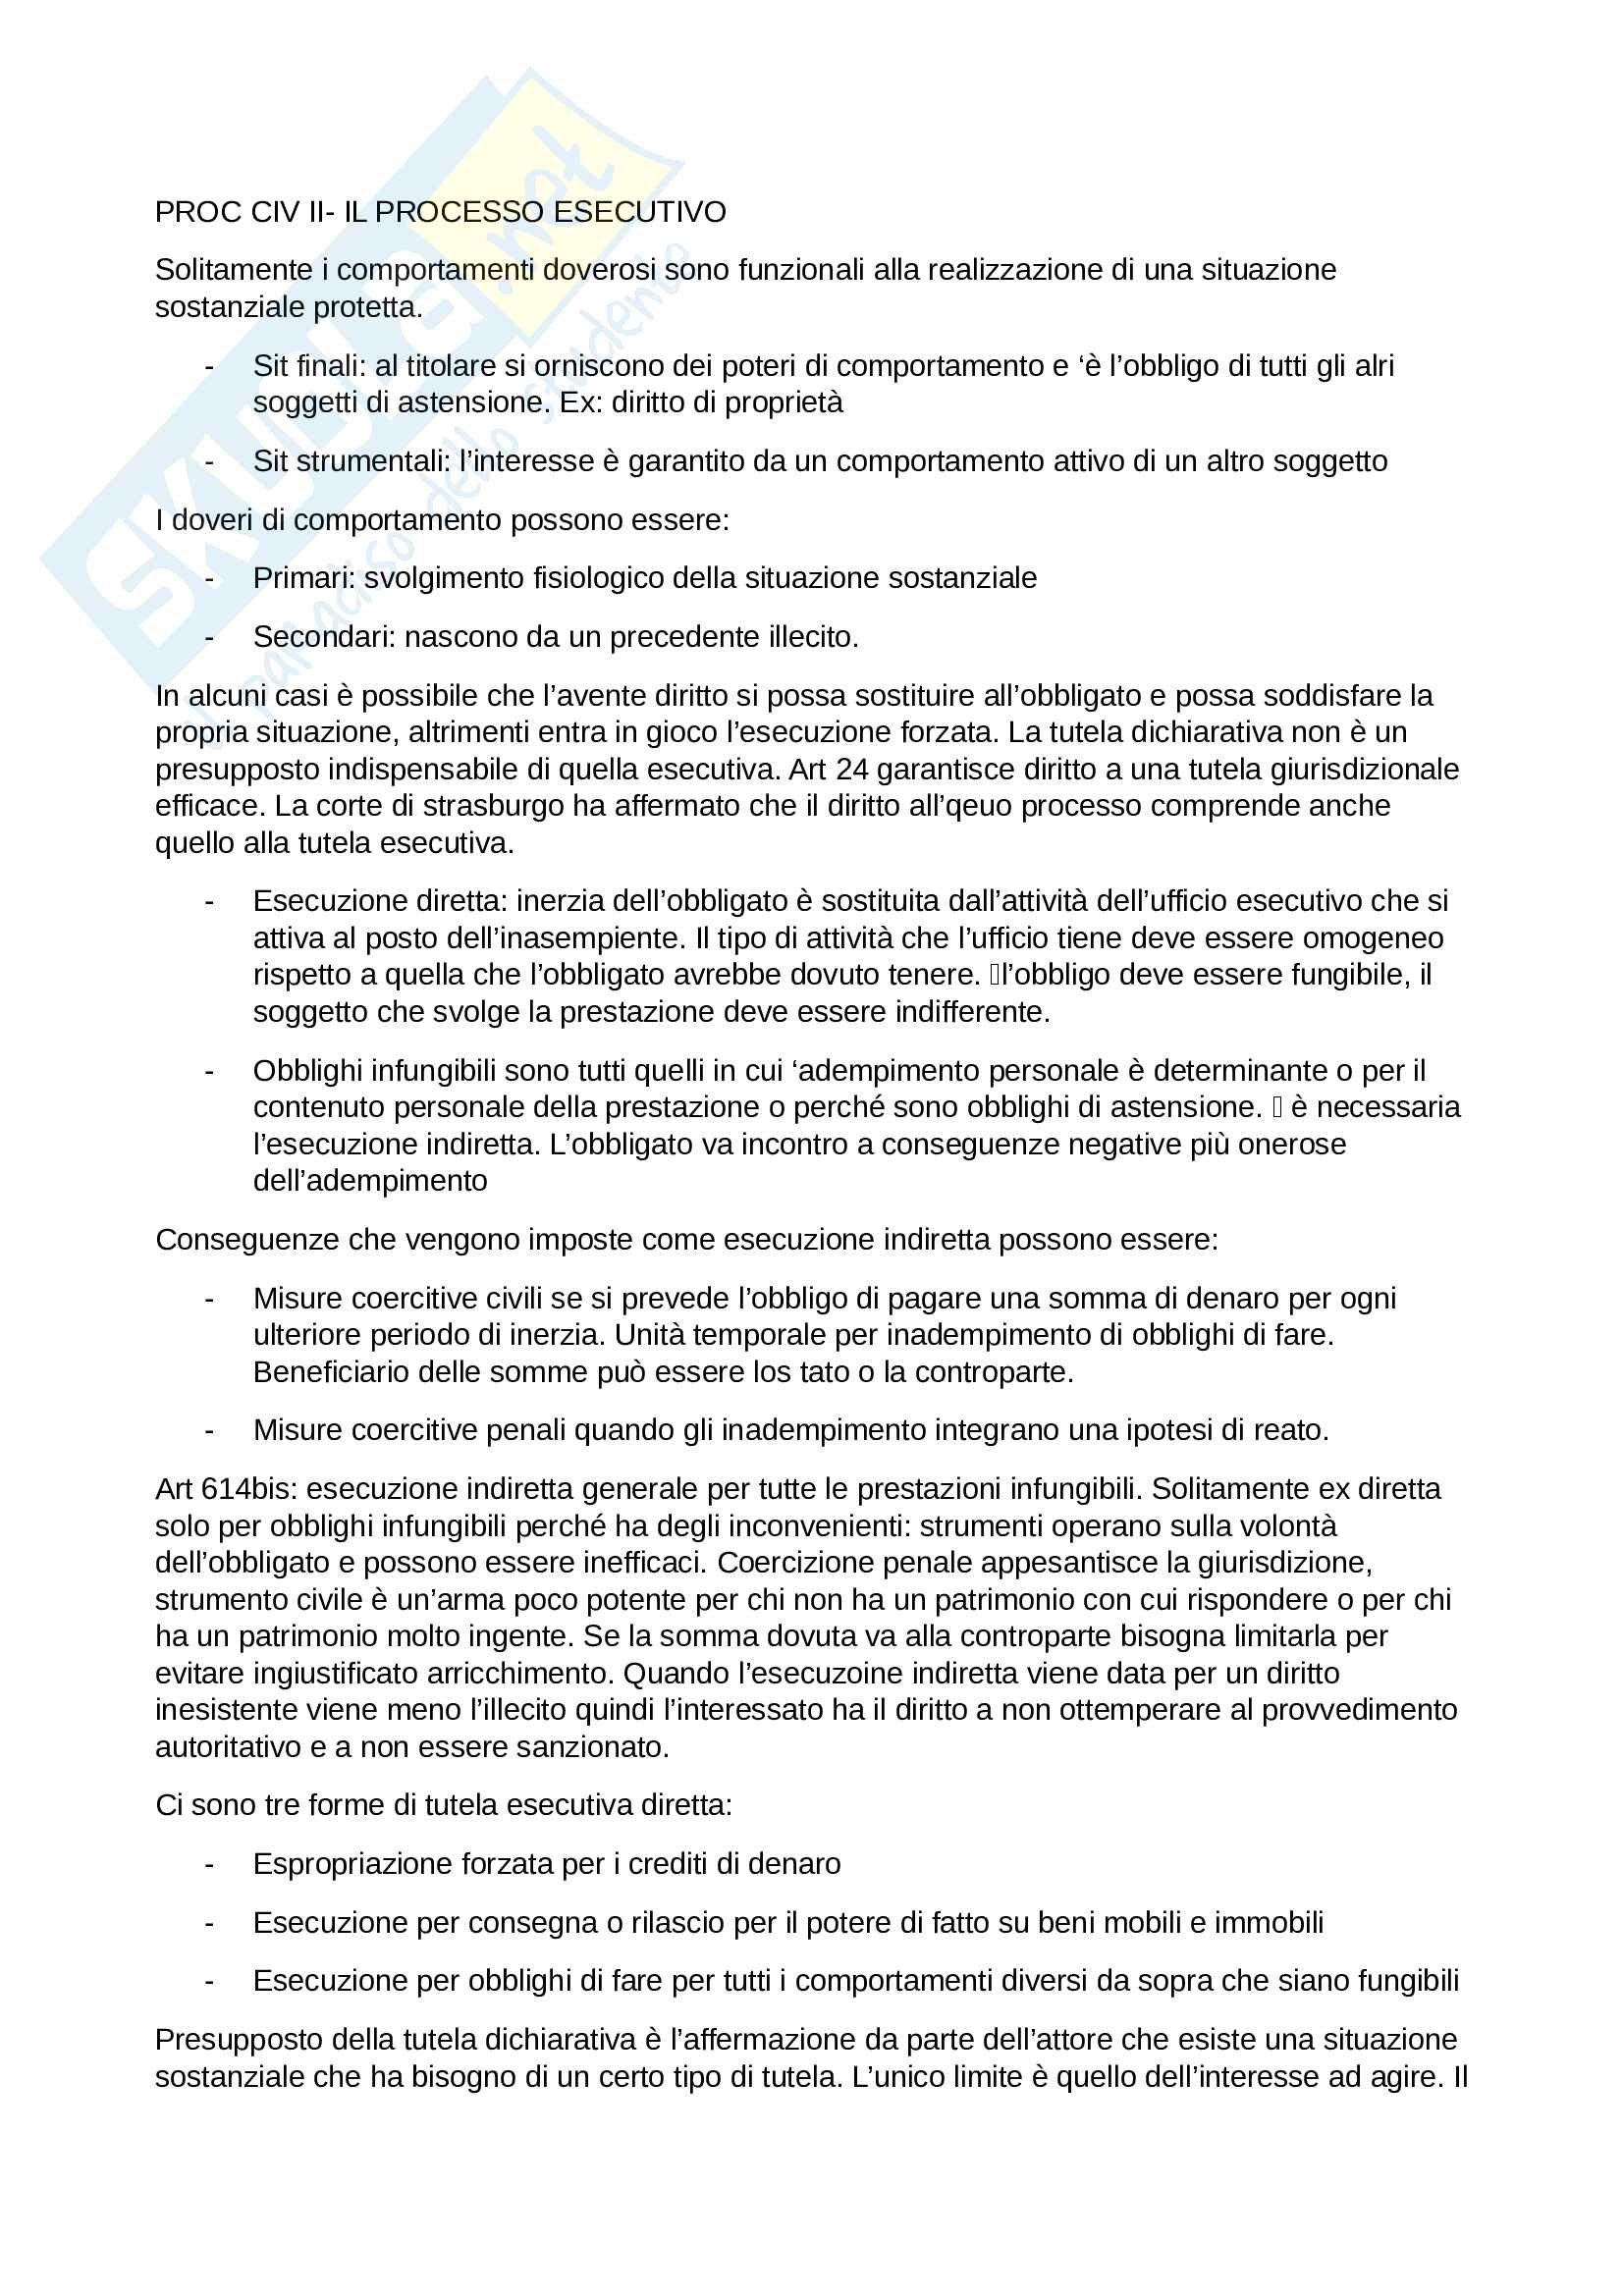 Procedura Civile II - schemi Pag. 1